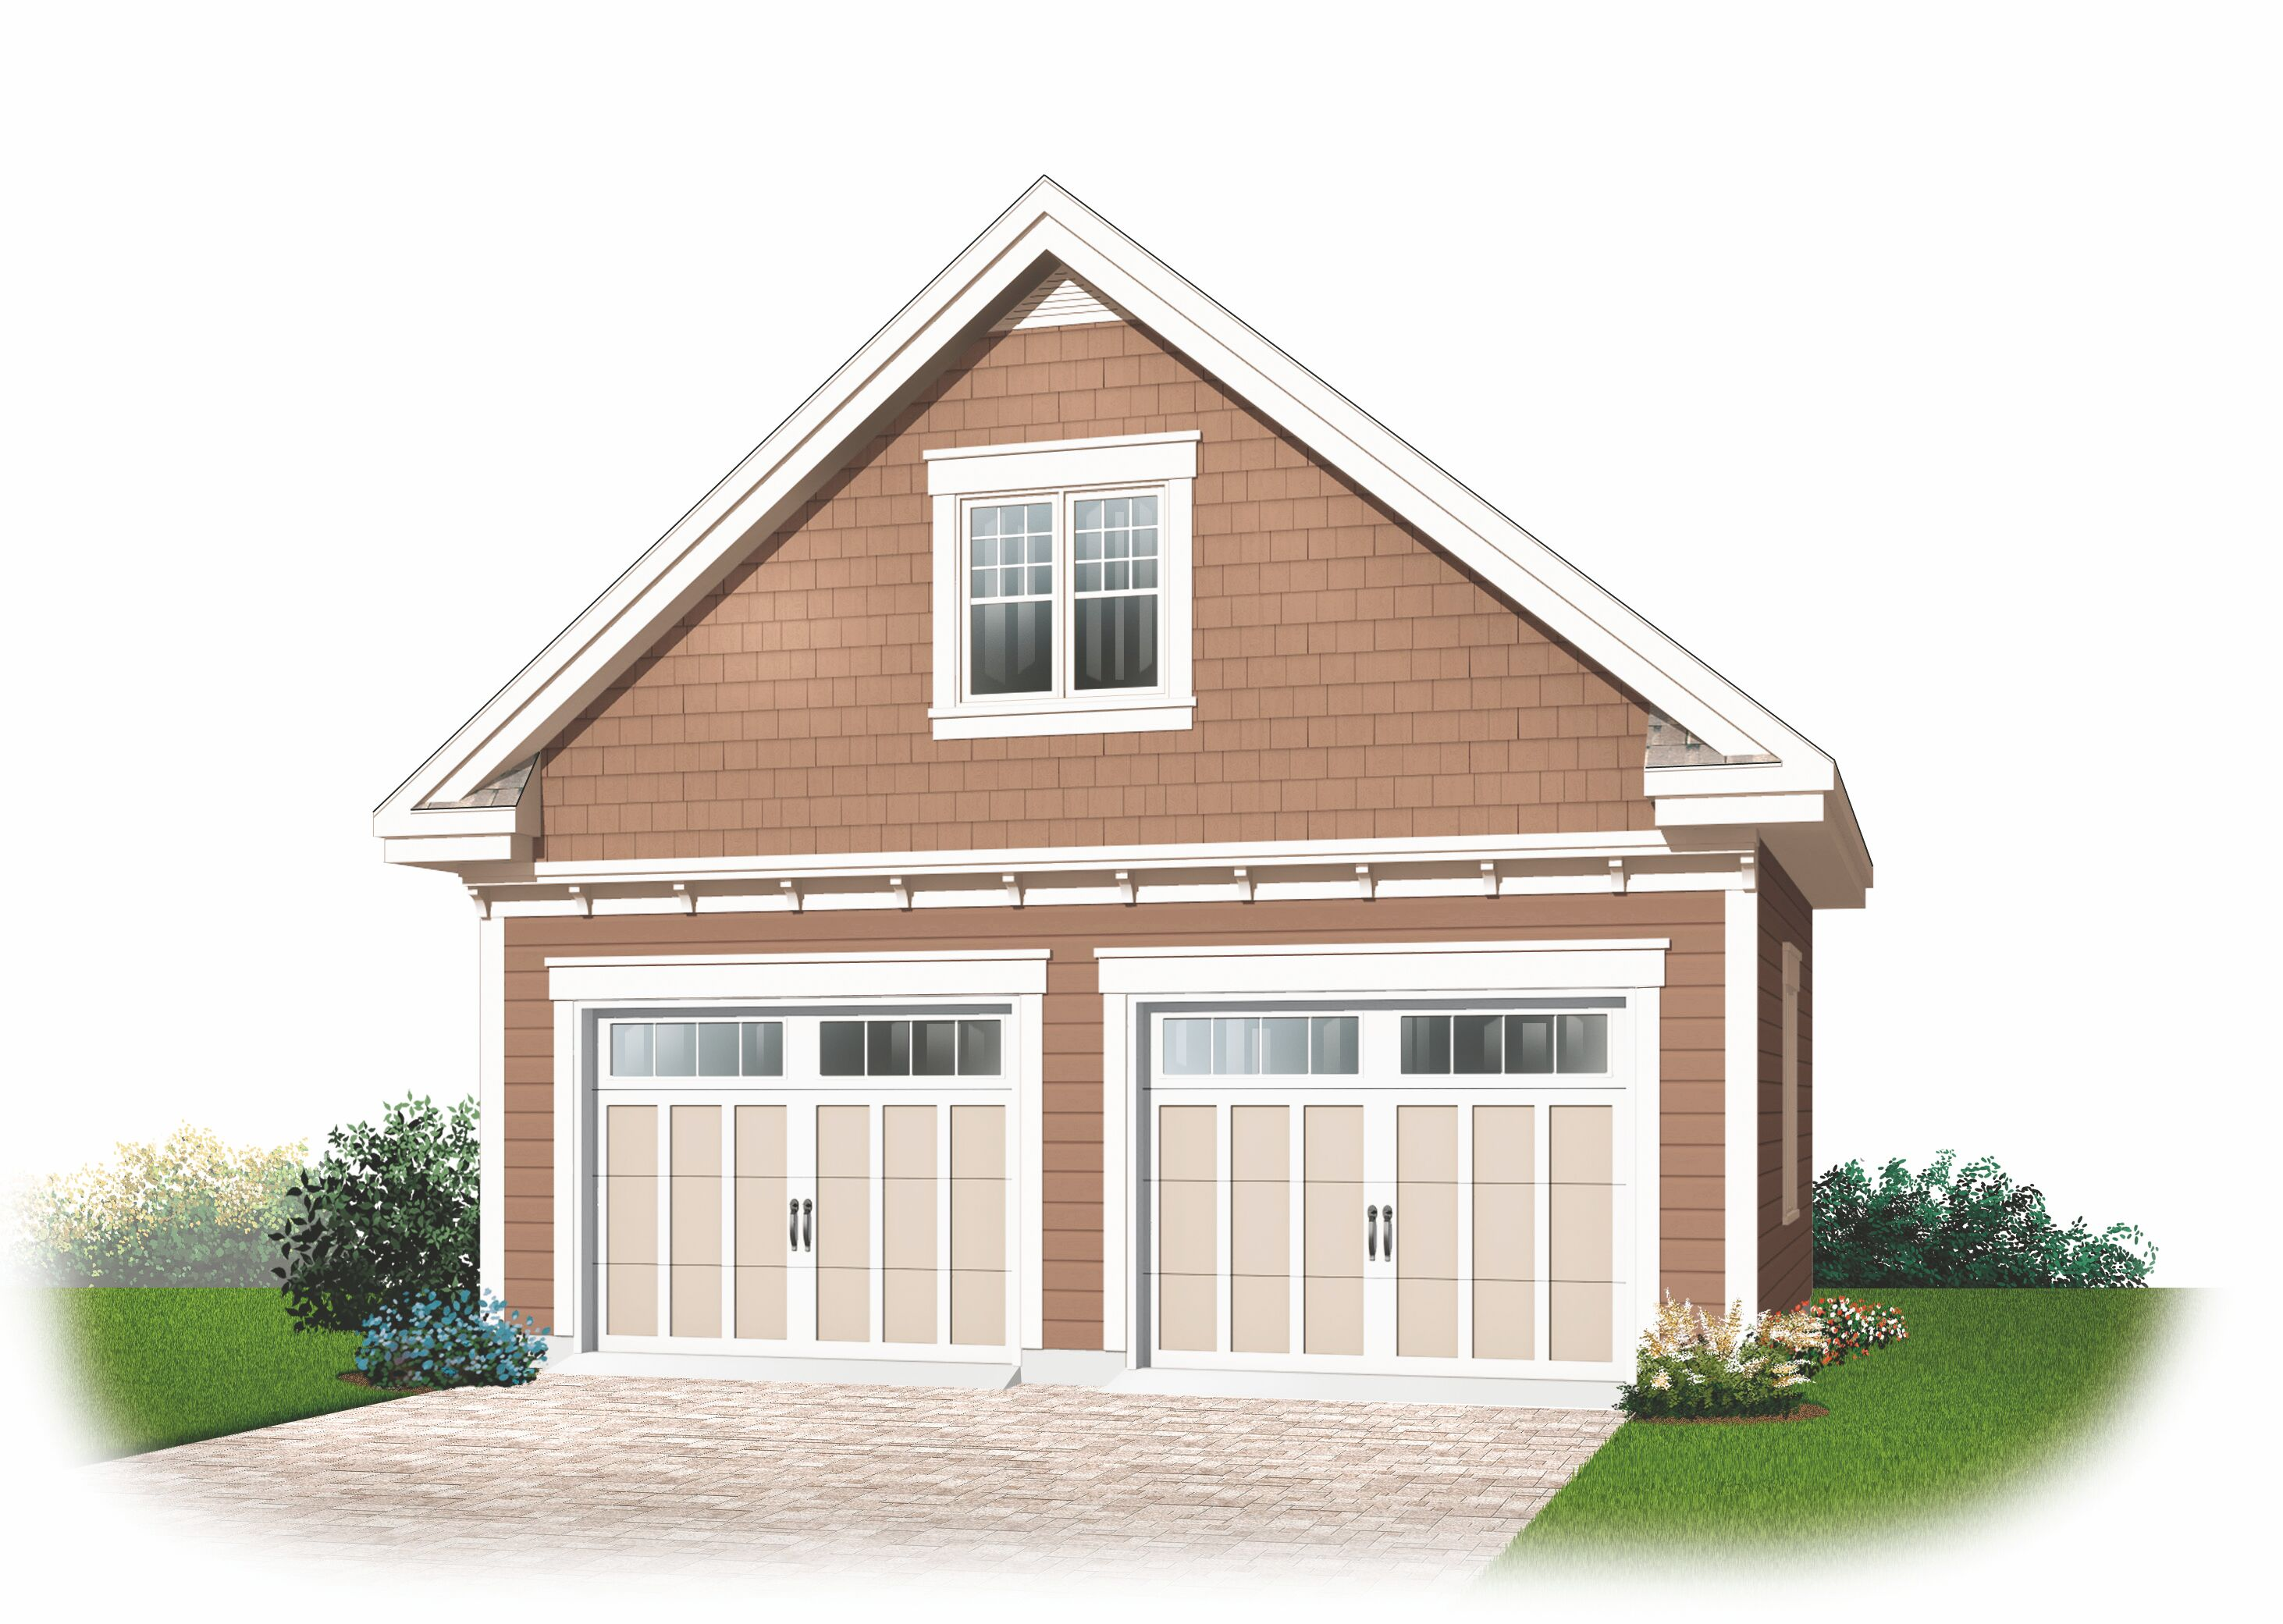 Garage plans with loft and house plans from design for 2 car garage house plans